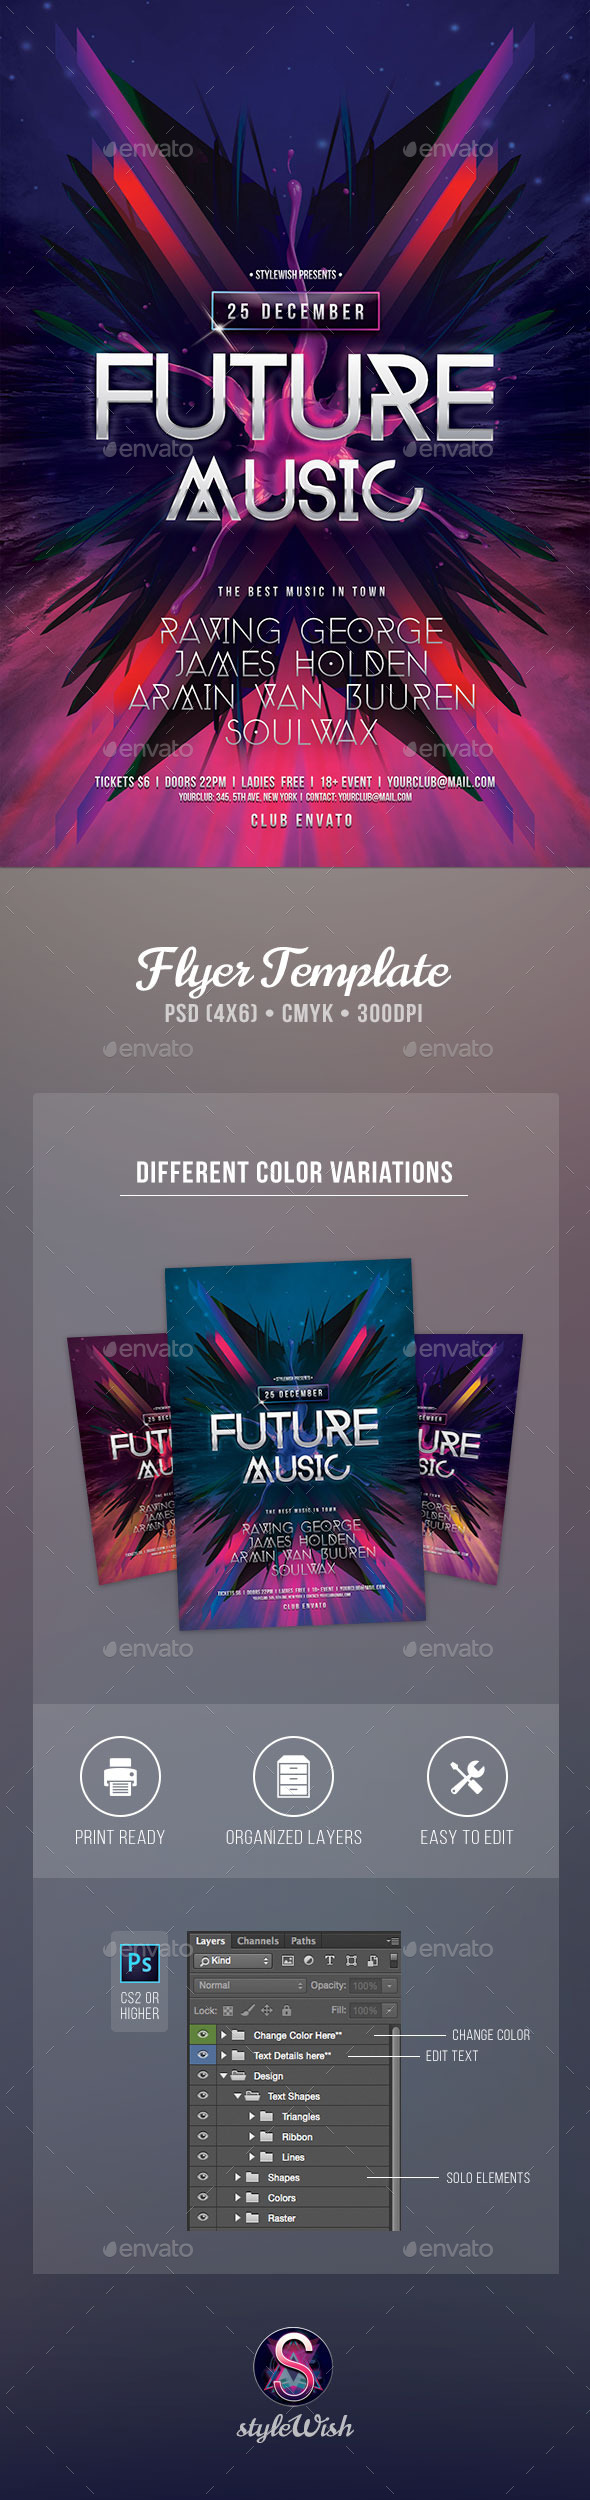 Future Music Flyer - Clubs & Parties Events